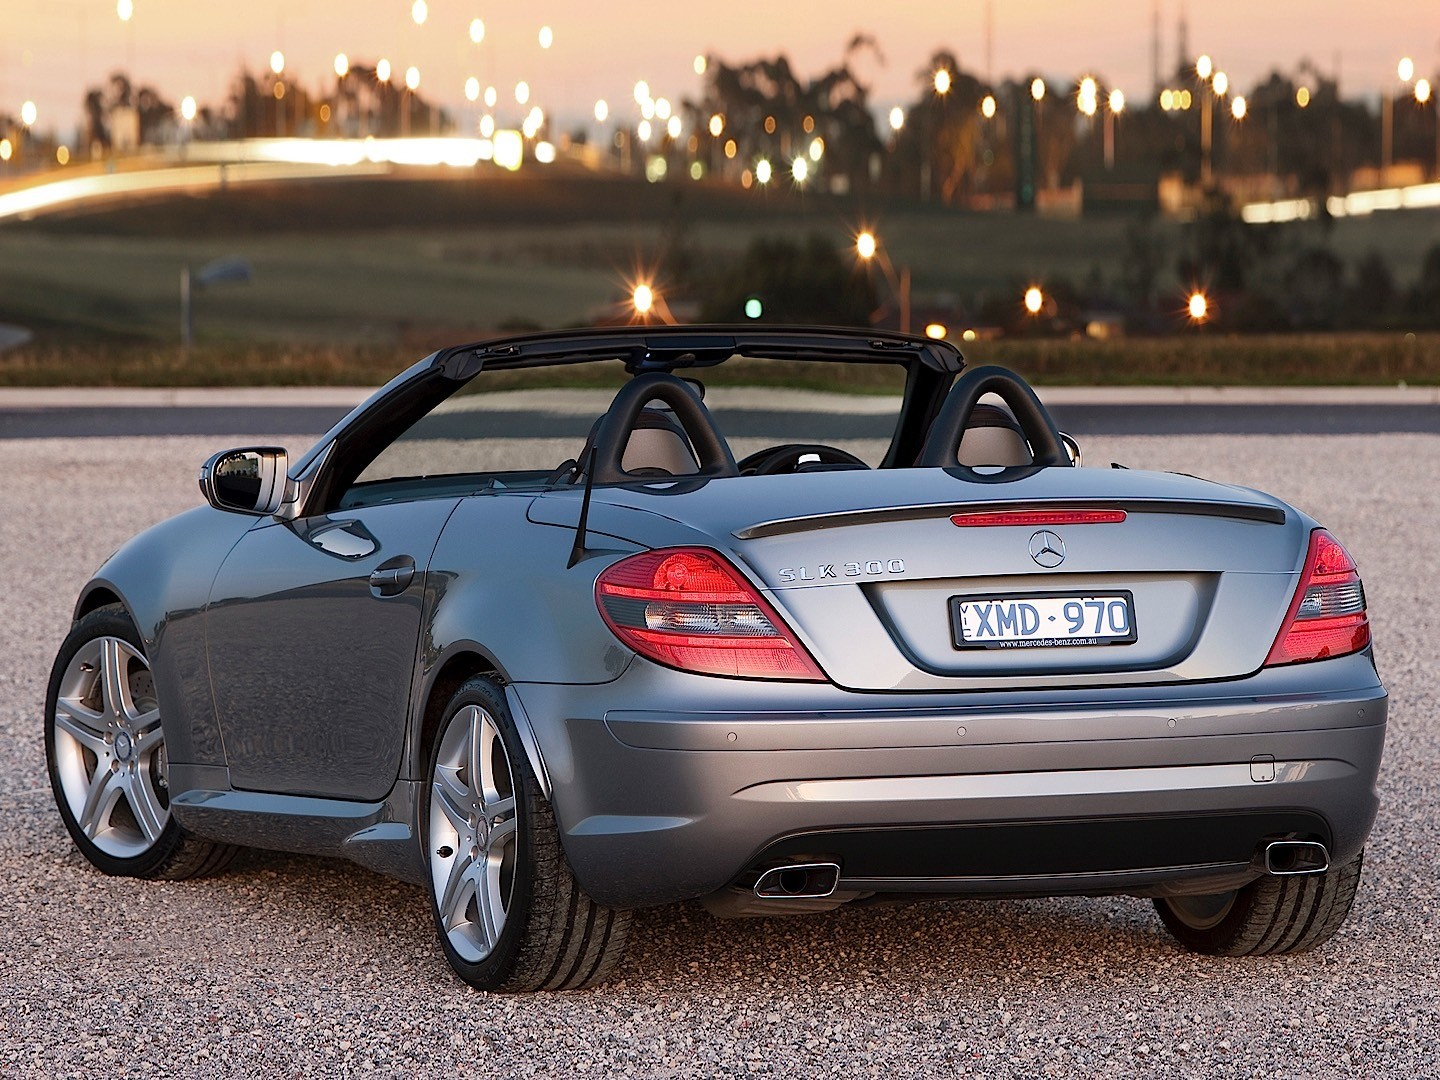 mercedes benz slk r171 specs 2008 2009 2010 2011. Black Bedroom Furniture Sets. Home Design Ideas